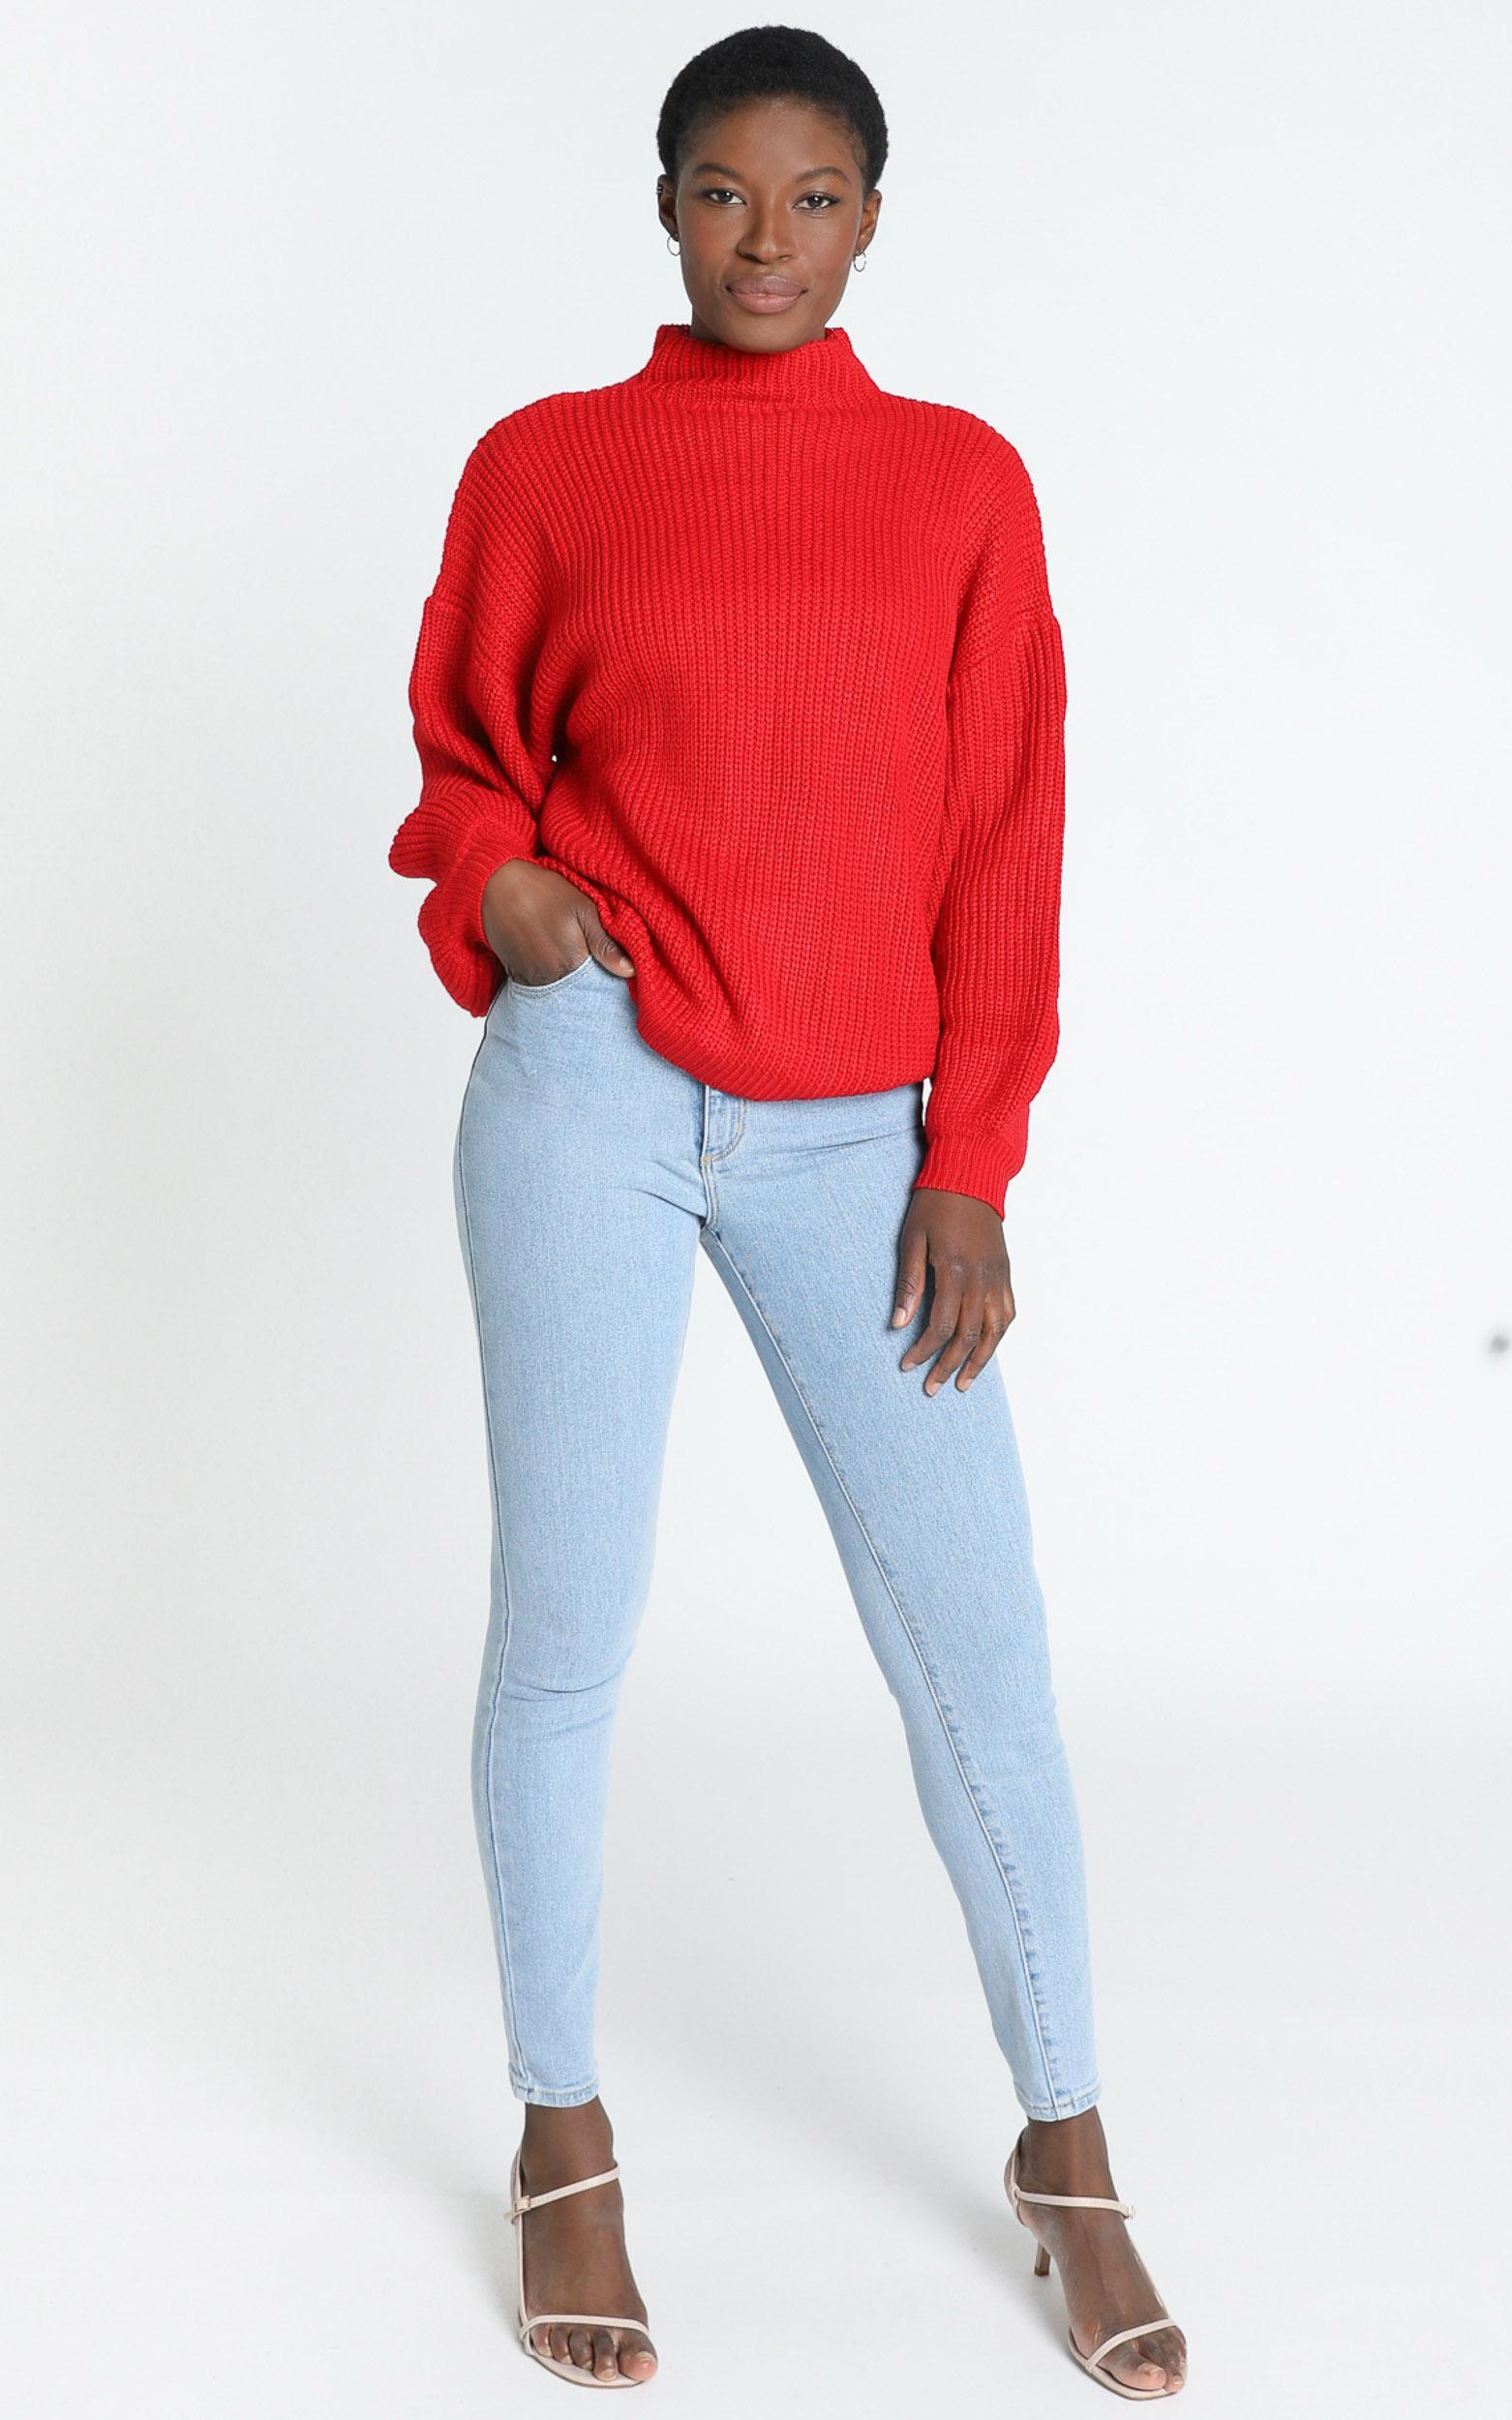 I Feel Love Oversized Knit Jumper in red - 8 (S), Red, hi-res image number null